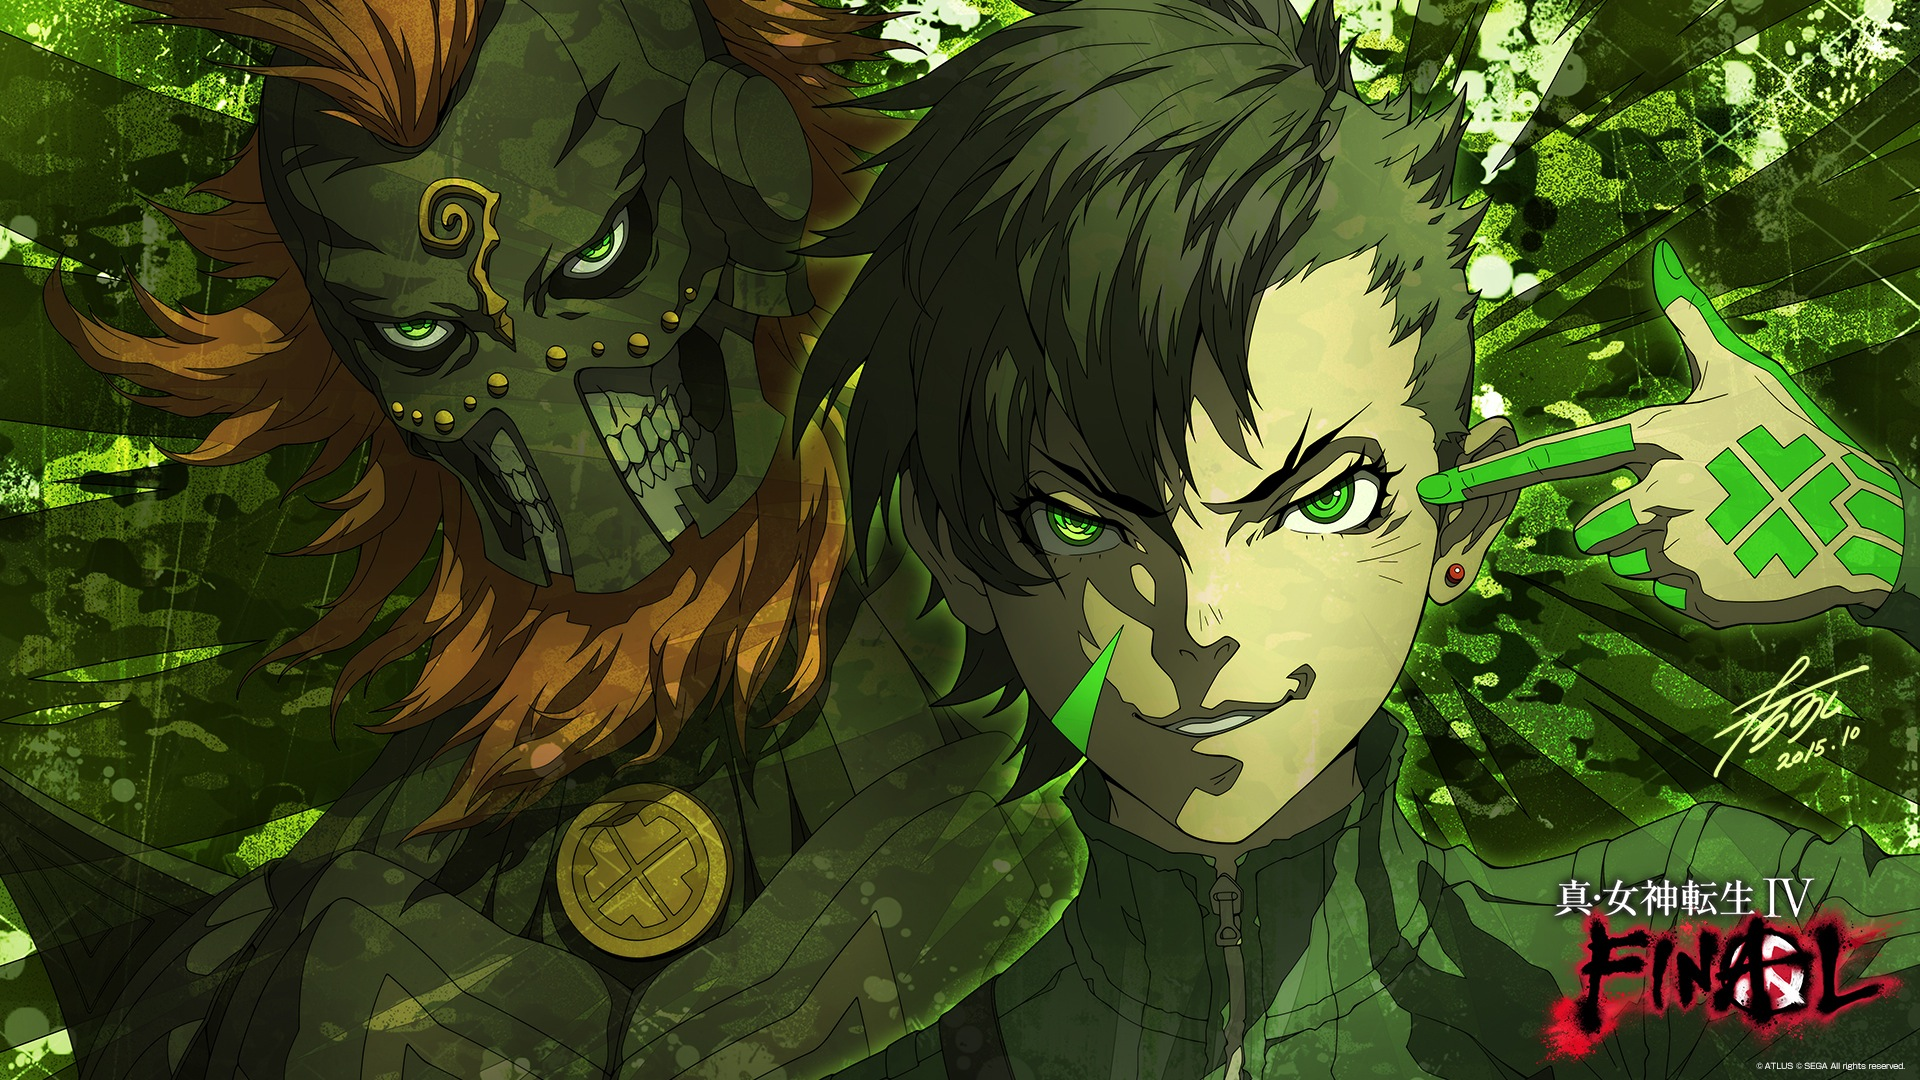 Modojo | Here's 11 Minutes of Shin Megami Tensei IV Final Gameplay